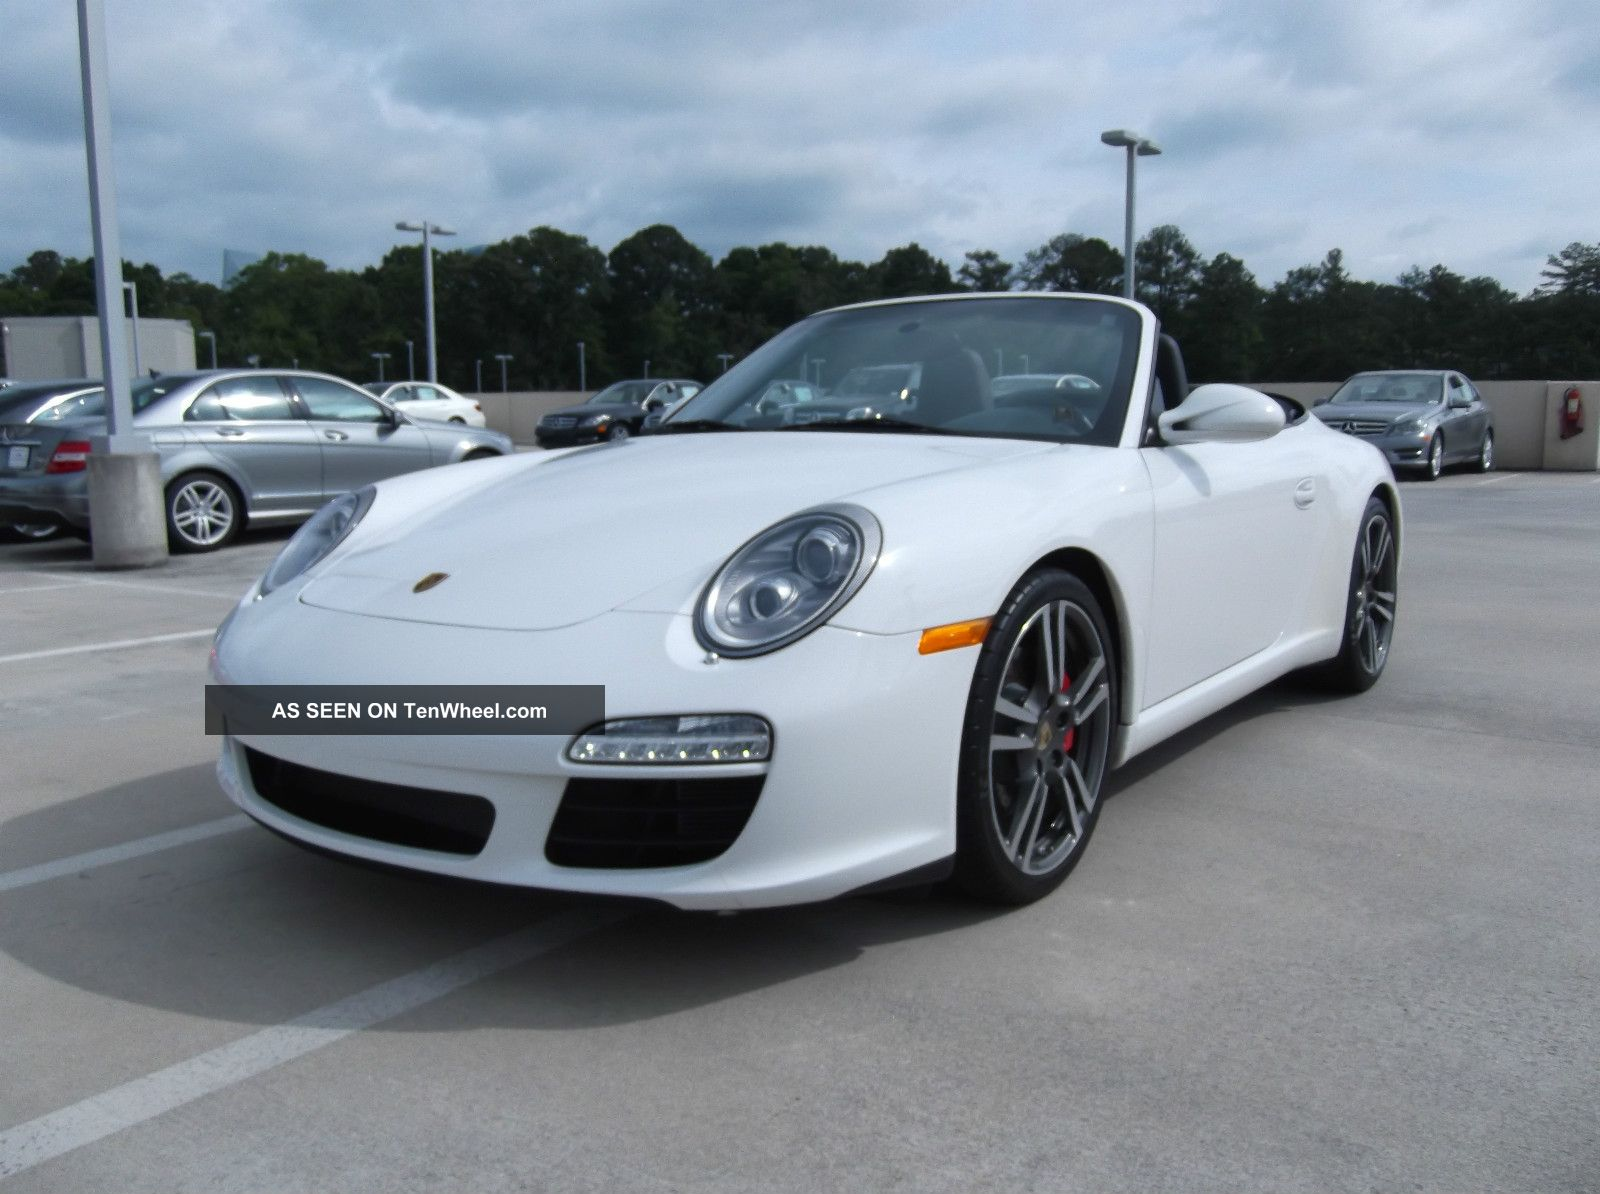 2011 Porsche 911 Carrera S Convertible Pdk 911 photo